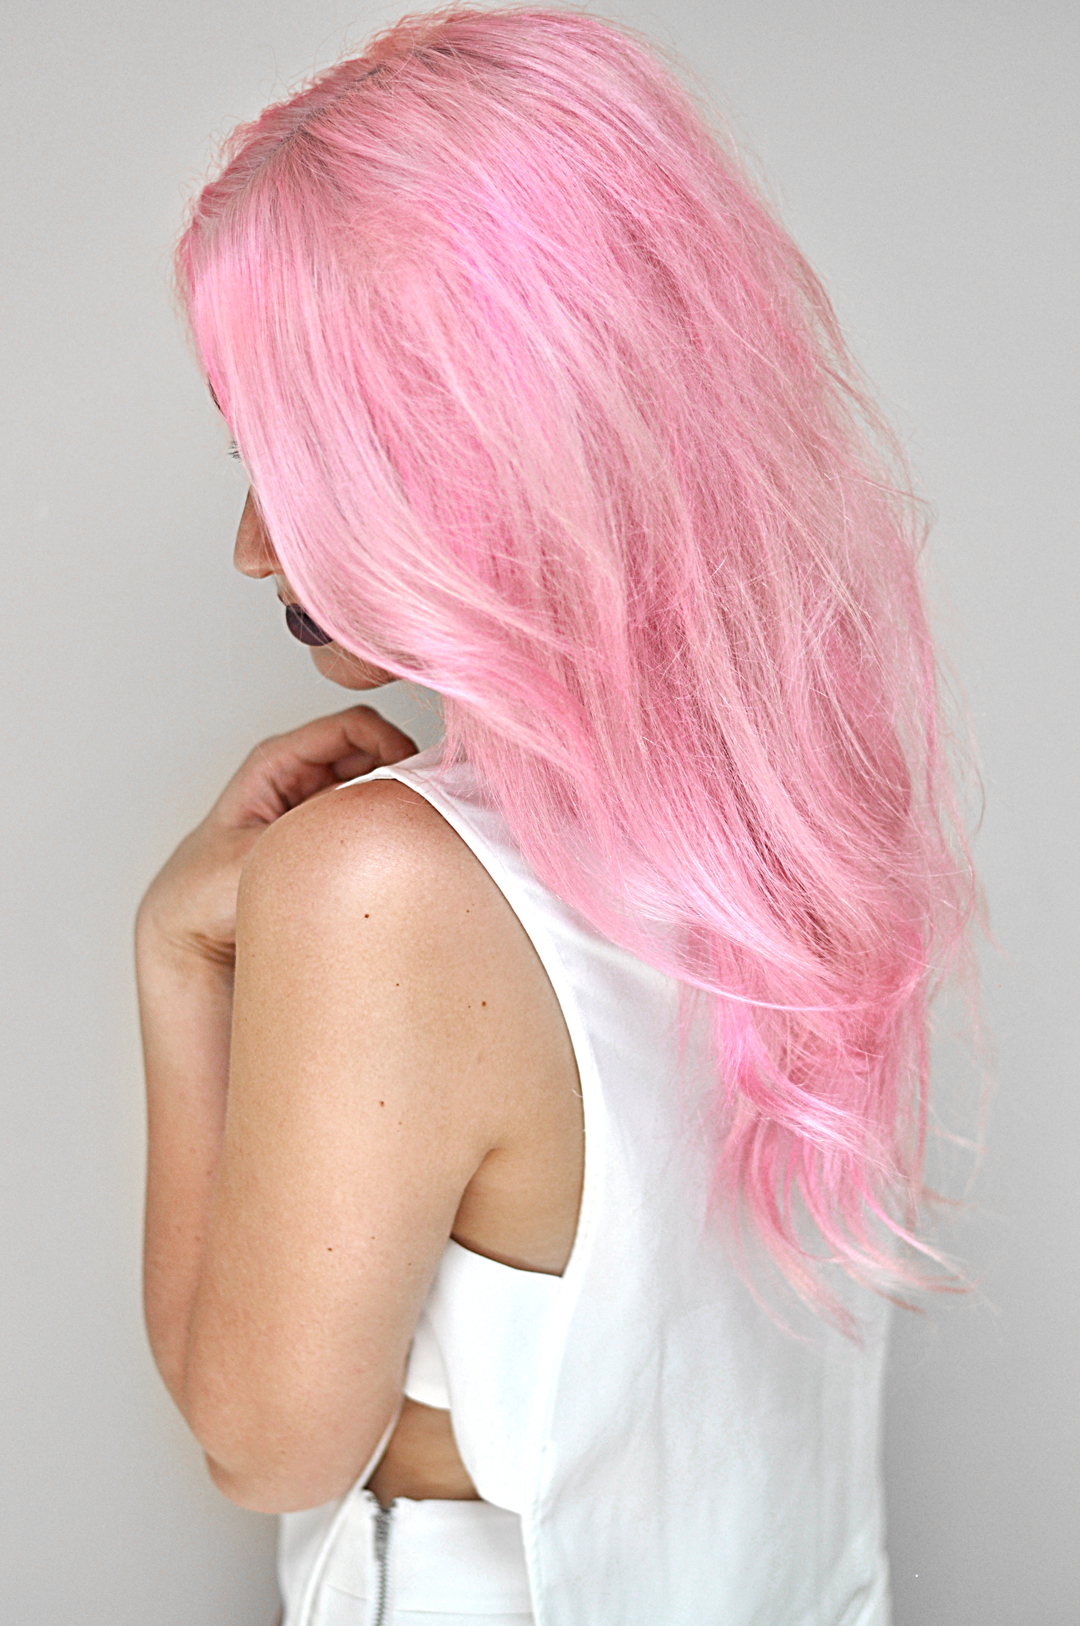 Stop skipping showers, washing with cold water, and dyeing your hair every other day. Keep pastel pink hair from fading the easy way with oVertone!